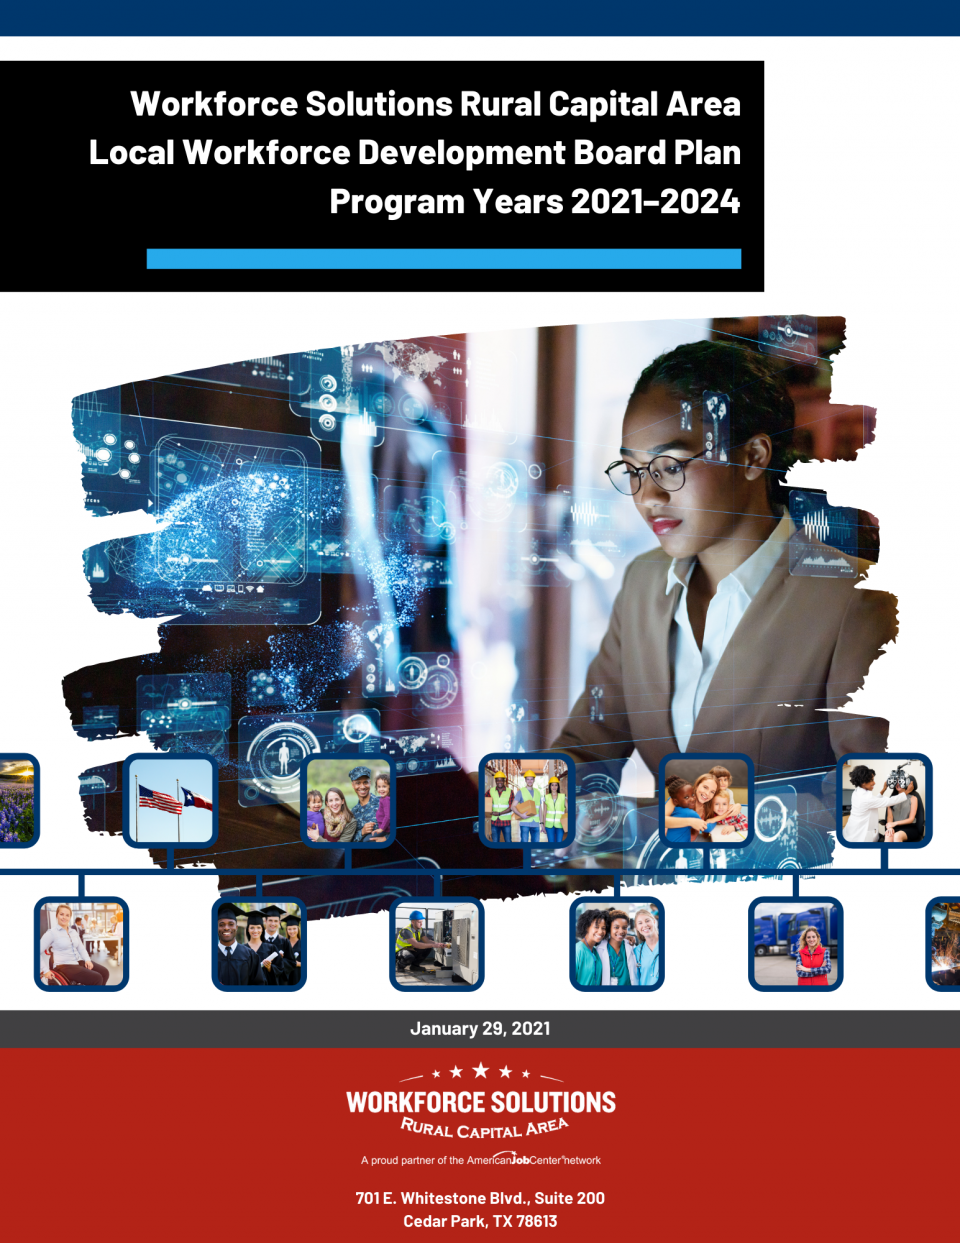 Public Comment Period: Weigh In on the Local Workforce Development Plan for 2021-2024